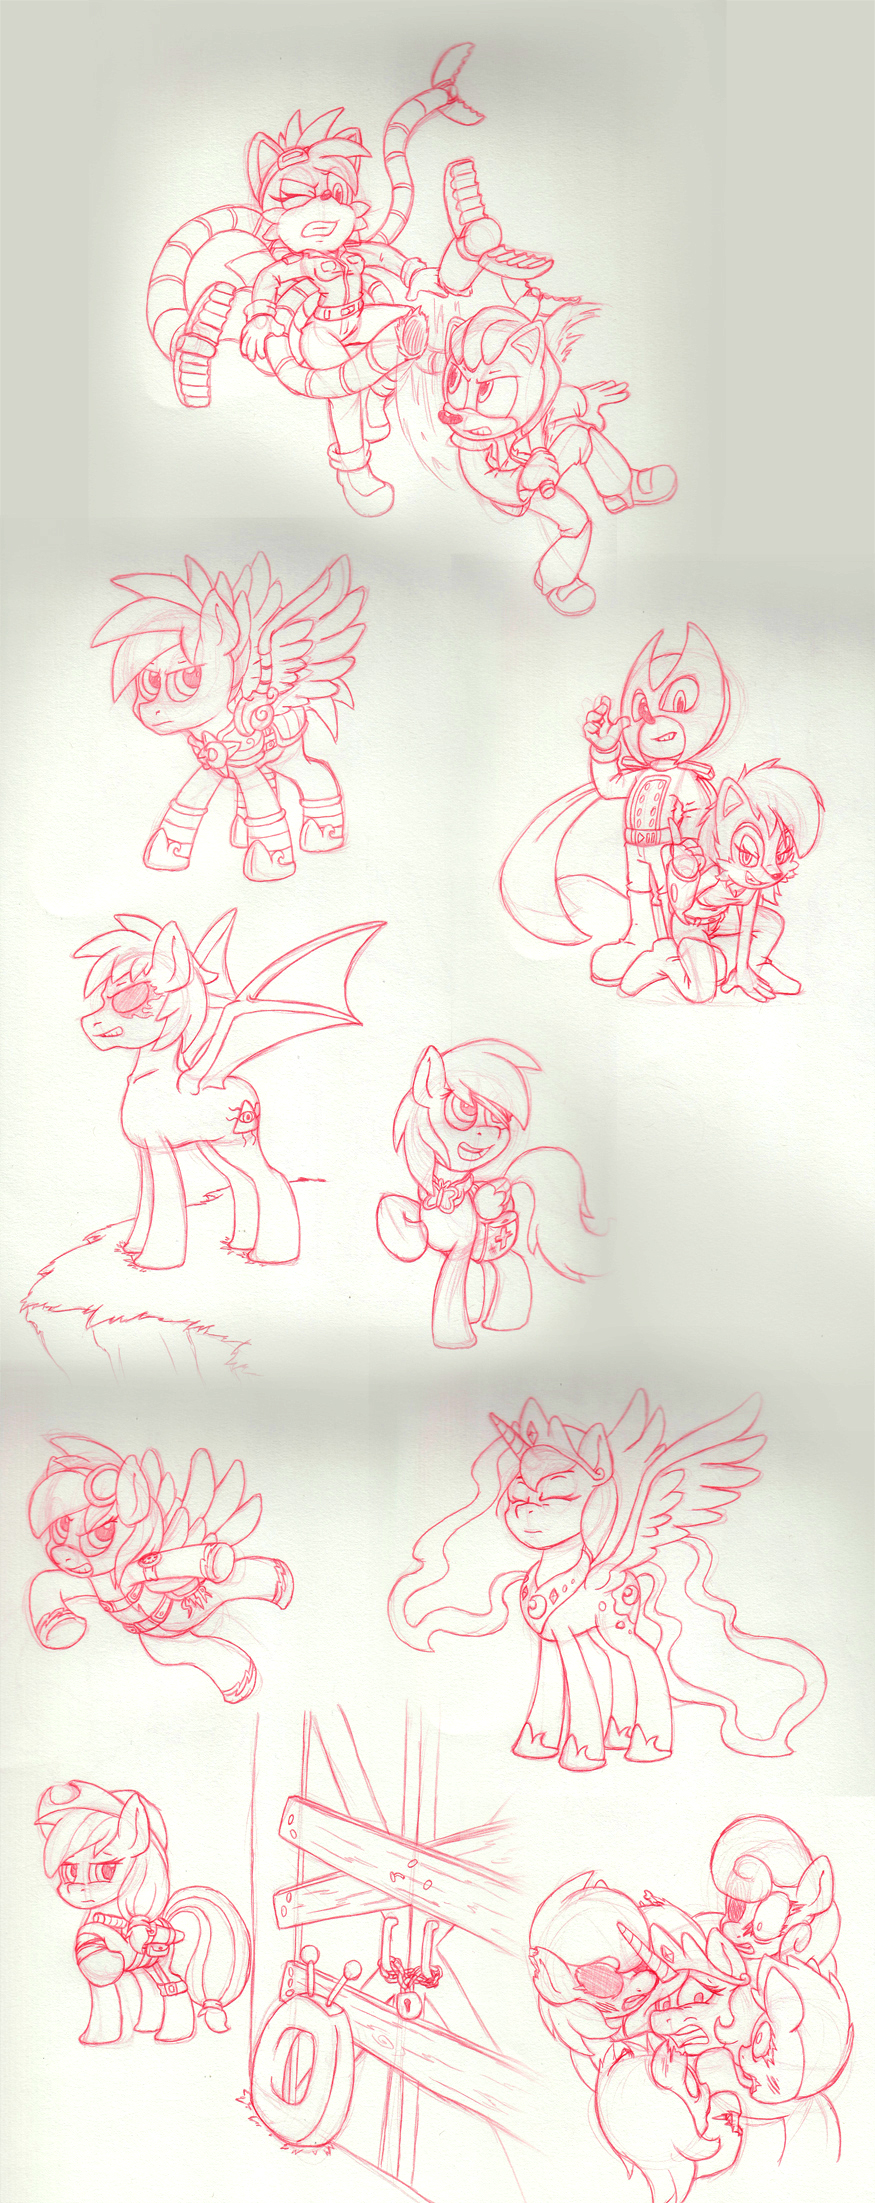 Comm-Sonic and Pony Sketches by Sound-Resonance